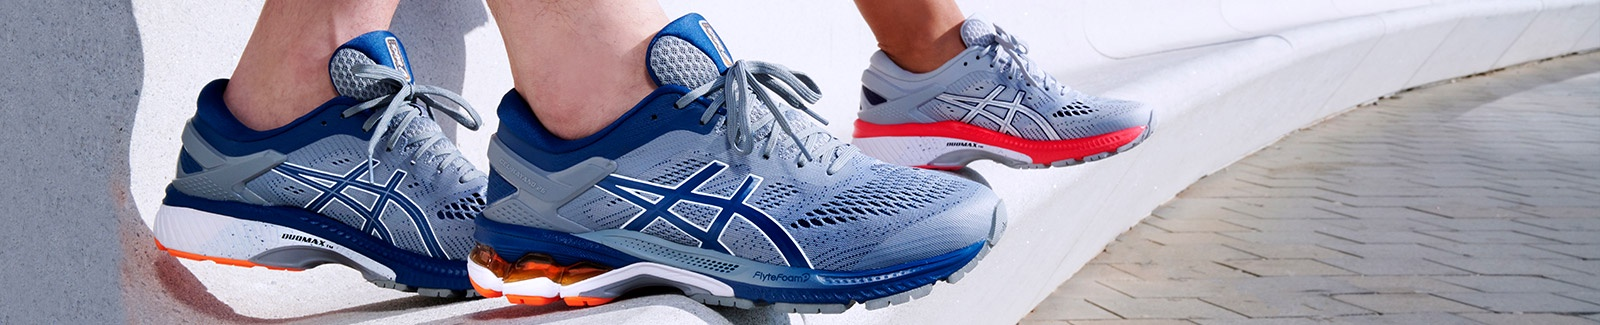 GEL-Kayano? 26 Footer